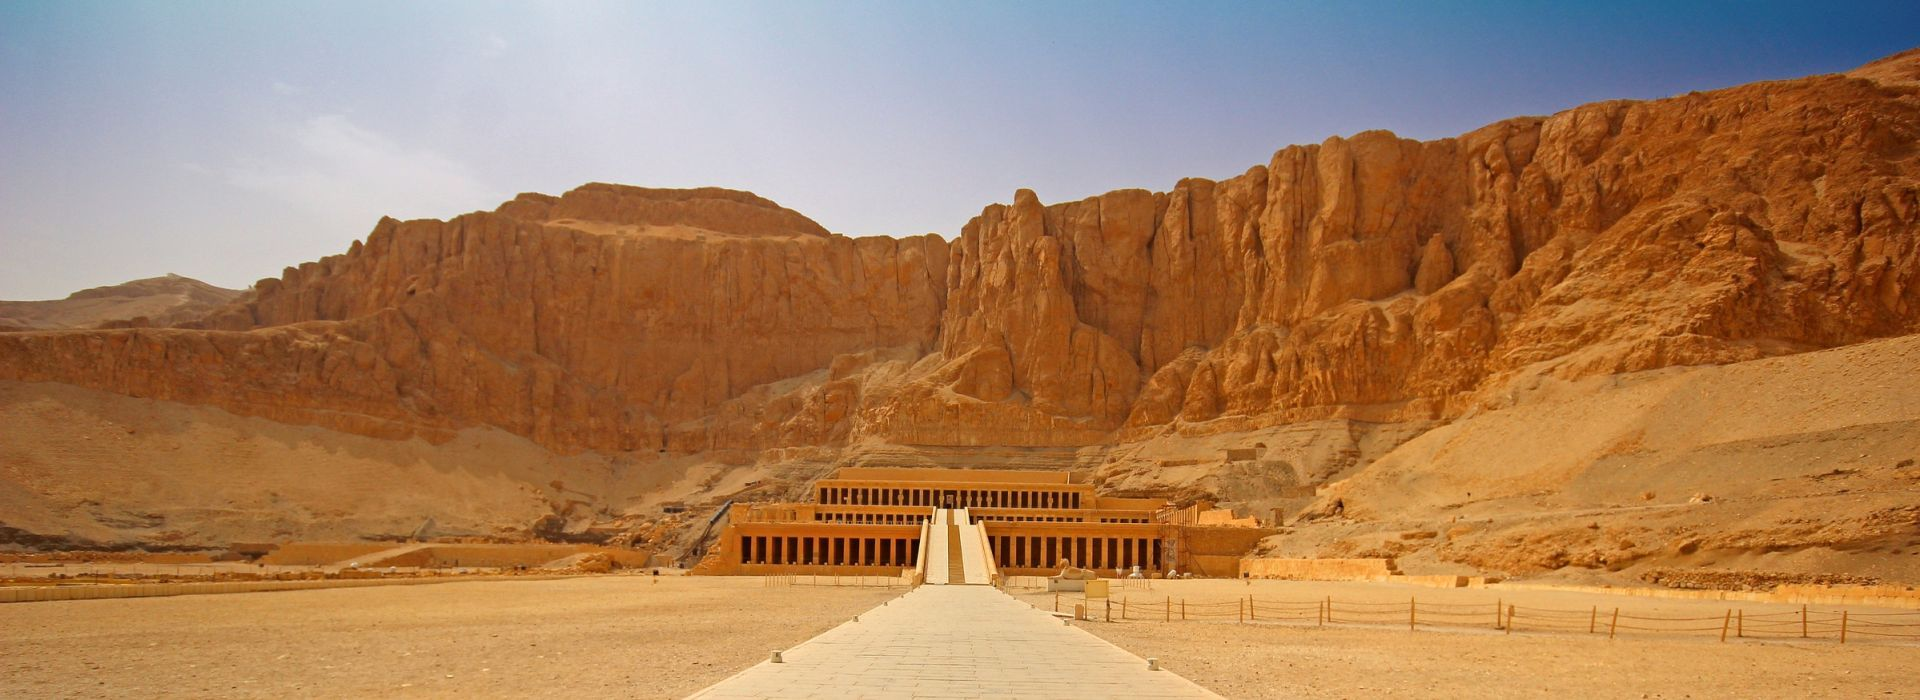 Sightseeing, attractions, culture and history Tours in Aswan